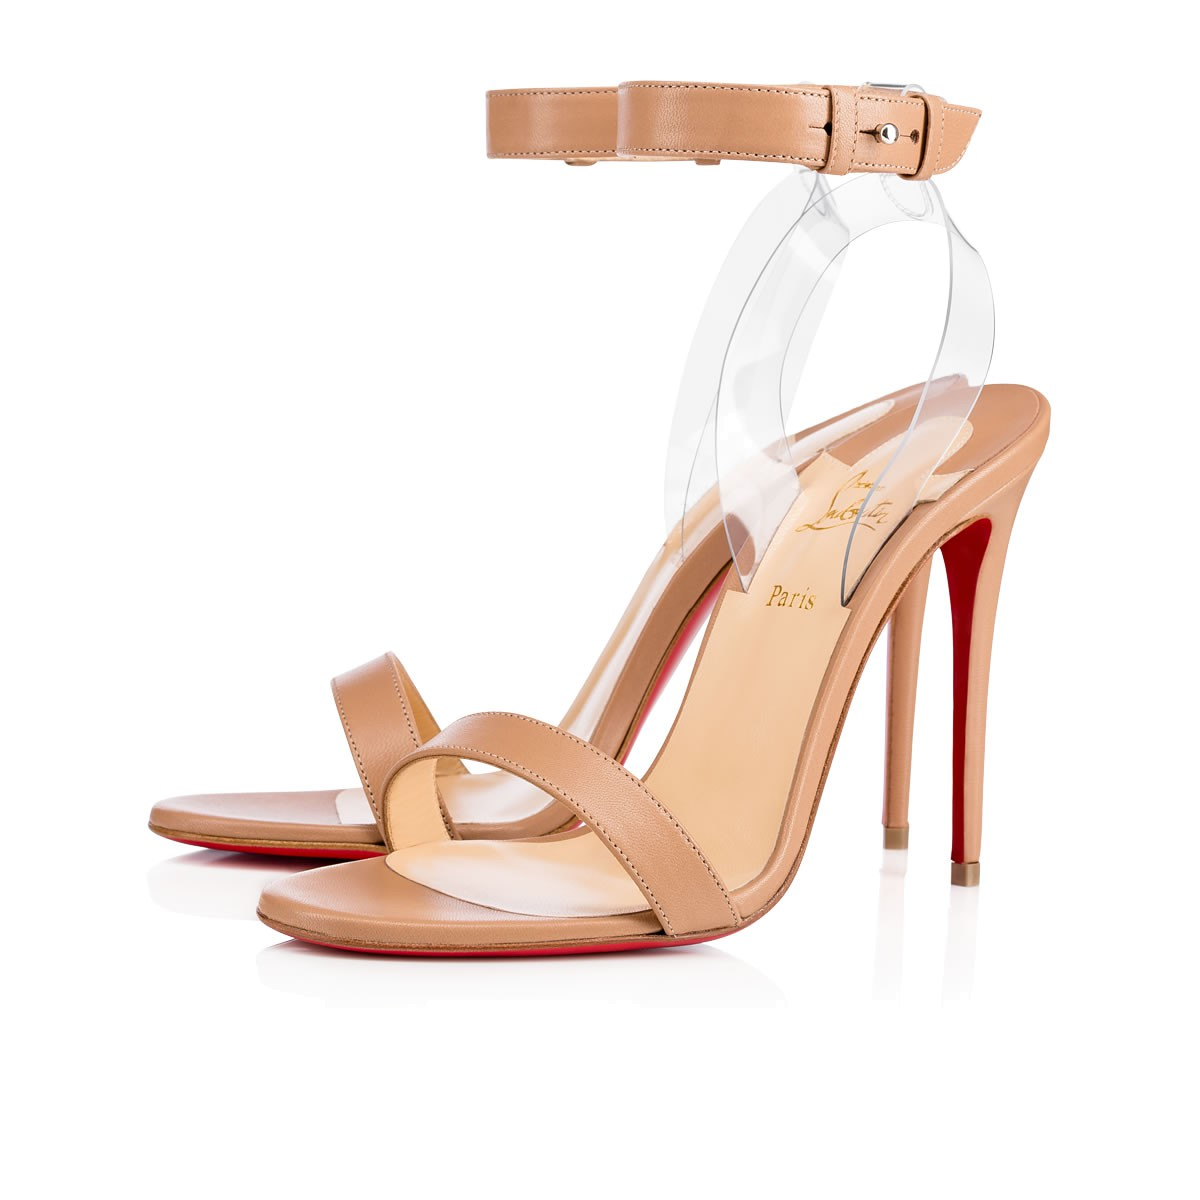 Christian Louboutin PVC T-Strap Sandals Cheap Sale In China Cheapest Price Cheap Price 4kWx93wk